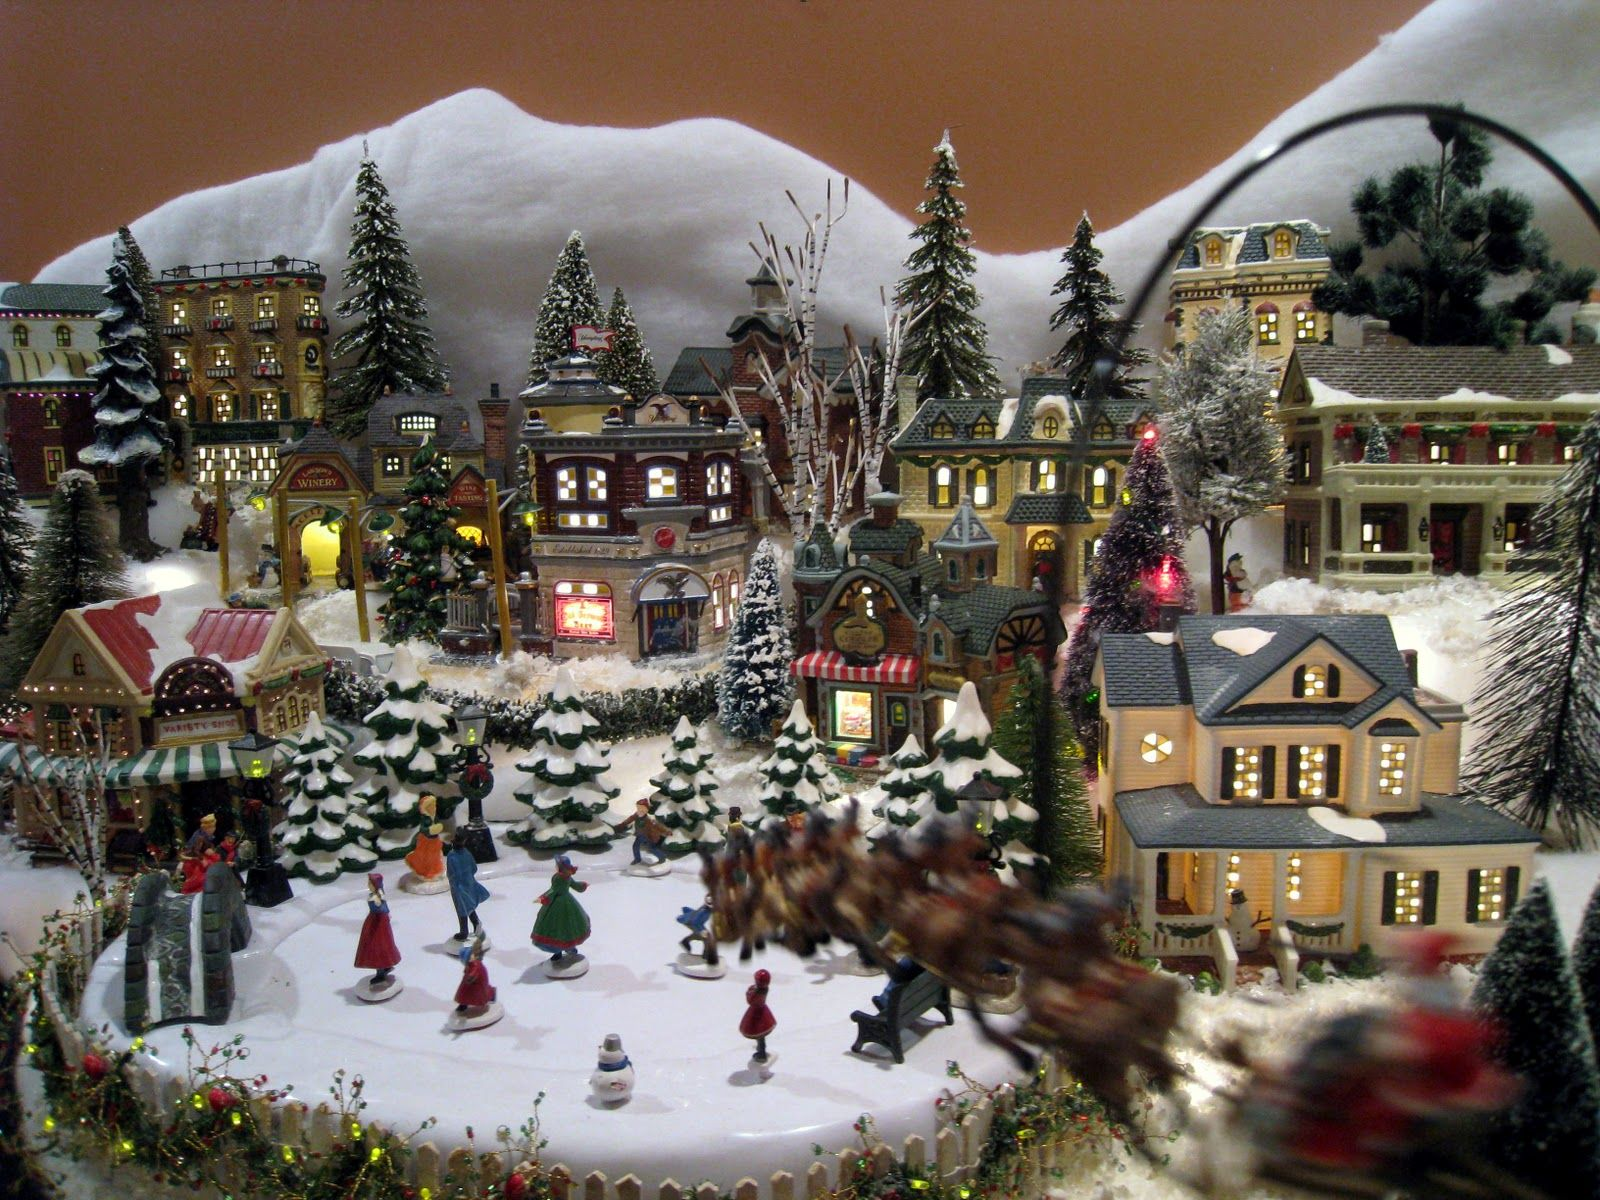 20 Amazing Christmas Village Display Pictures Gallery Christmas Village Display Diy Christmas Village Displays Christmas Village Sets